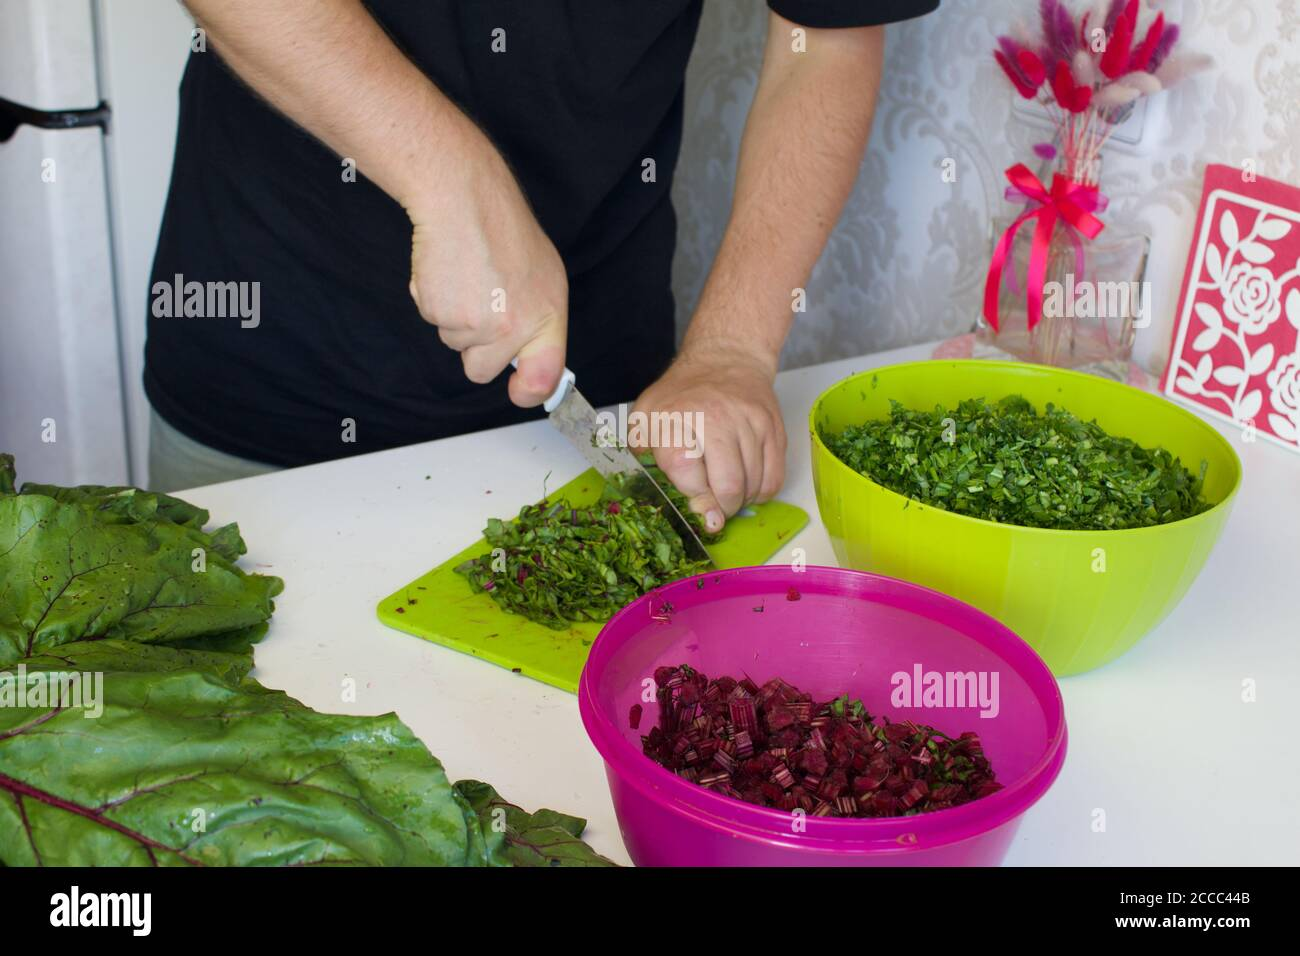 The man cut the tops of beets on a cutting Board. Next to it on the surface of the table are parsley and beet tops. In the container, crushed parsley Stock Photo